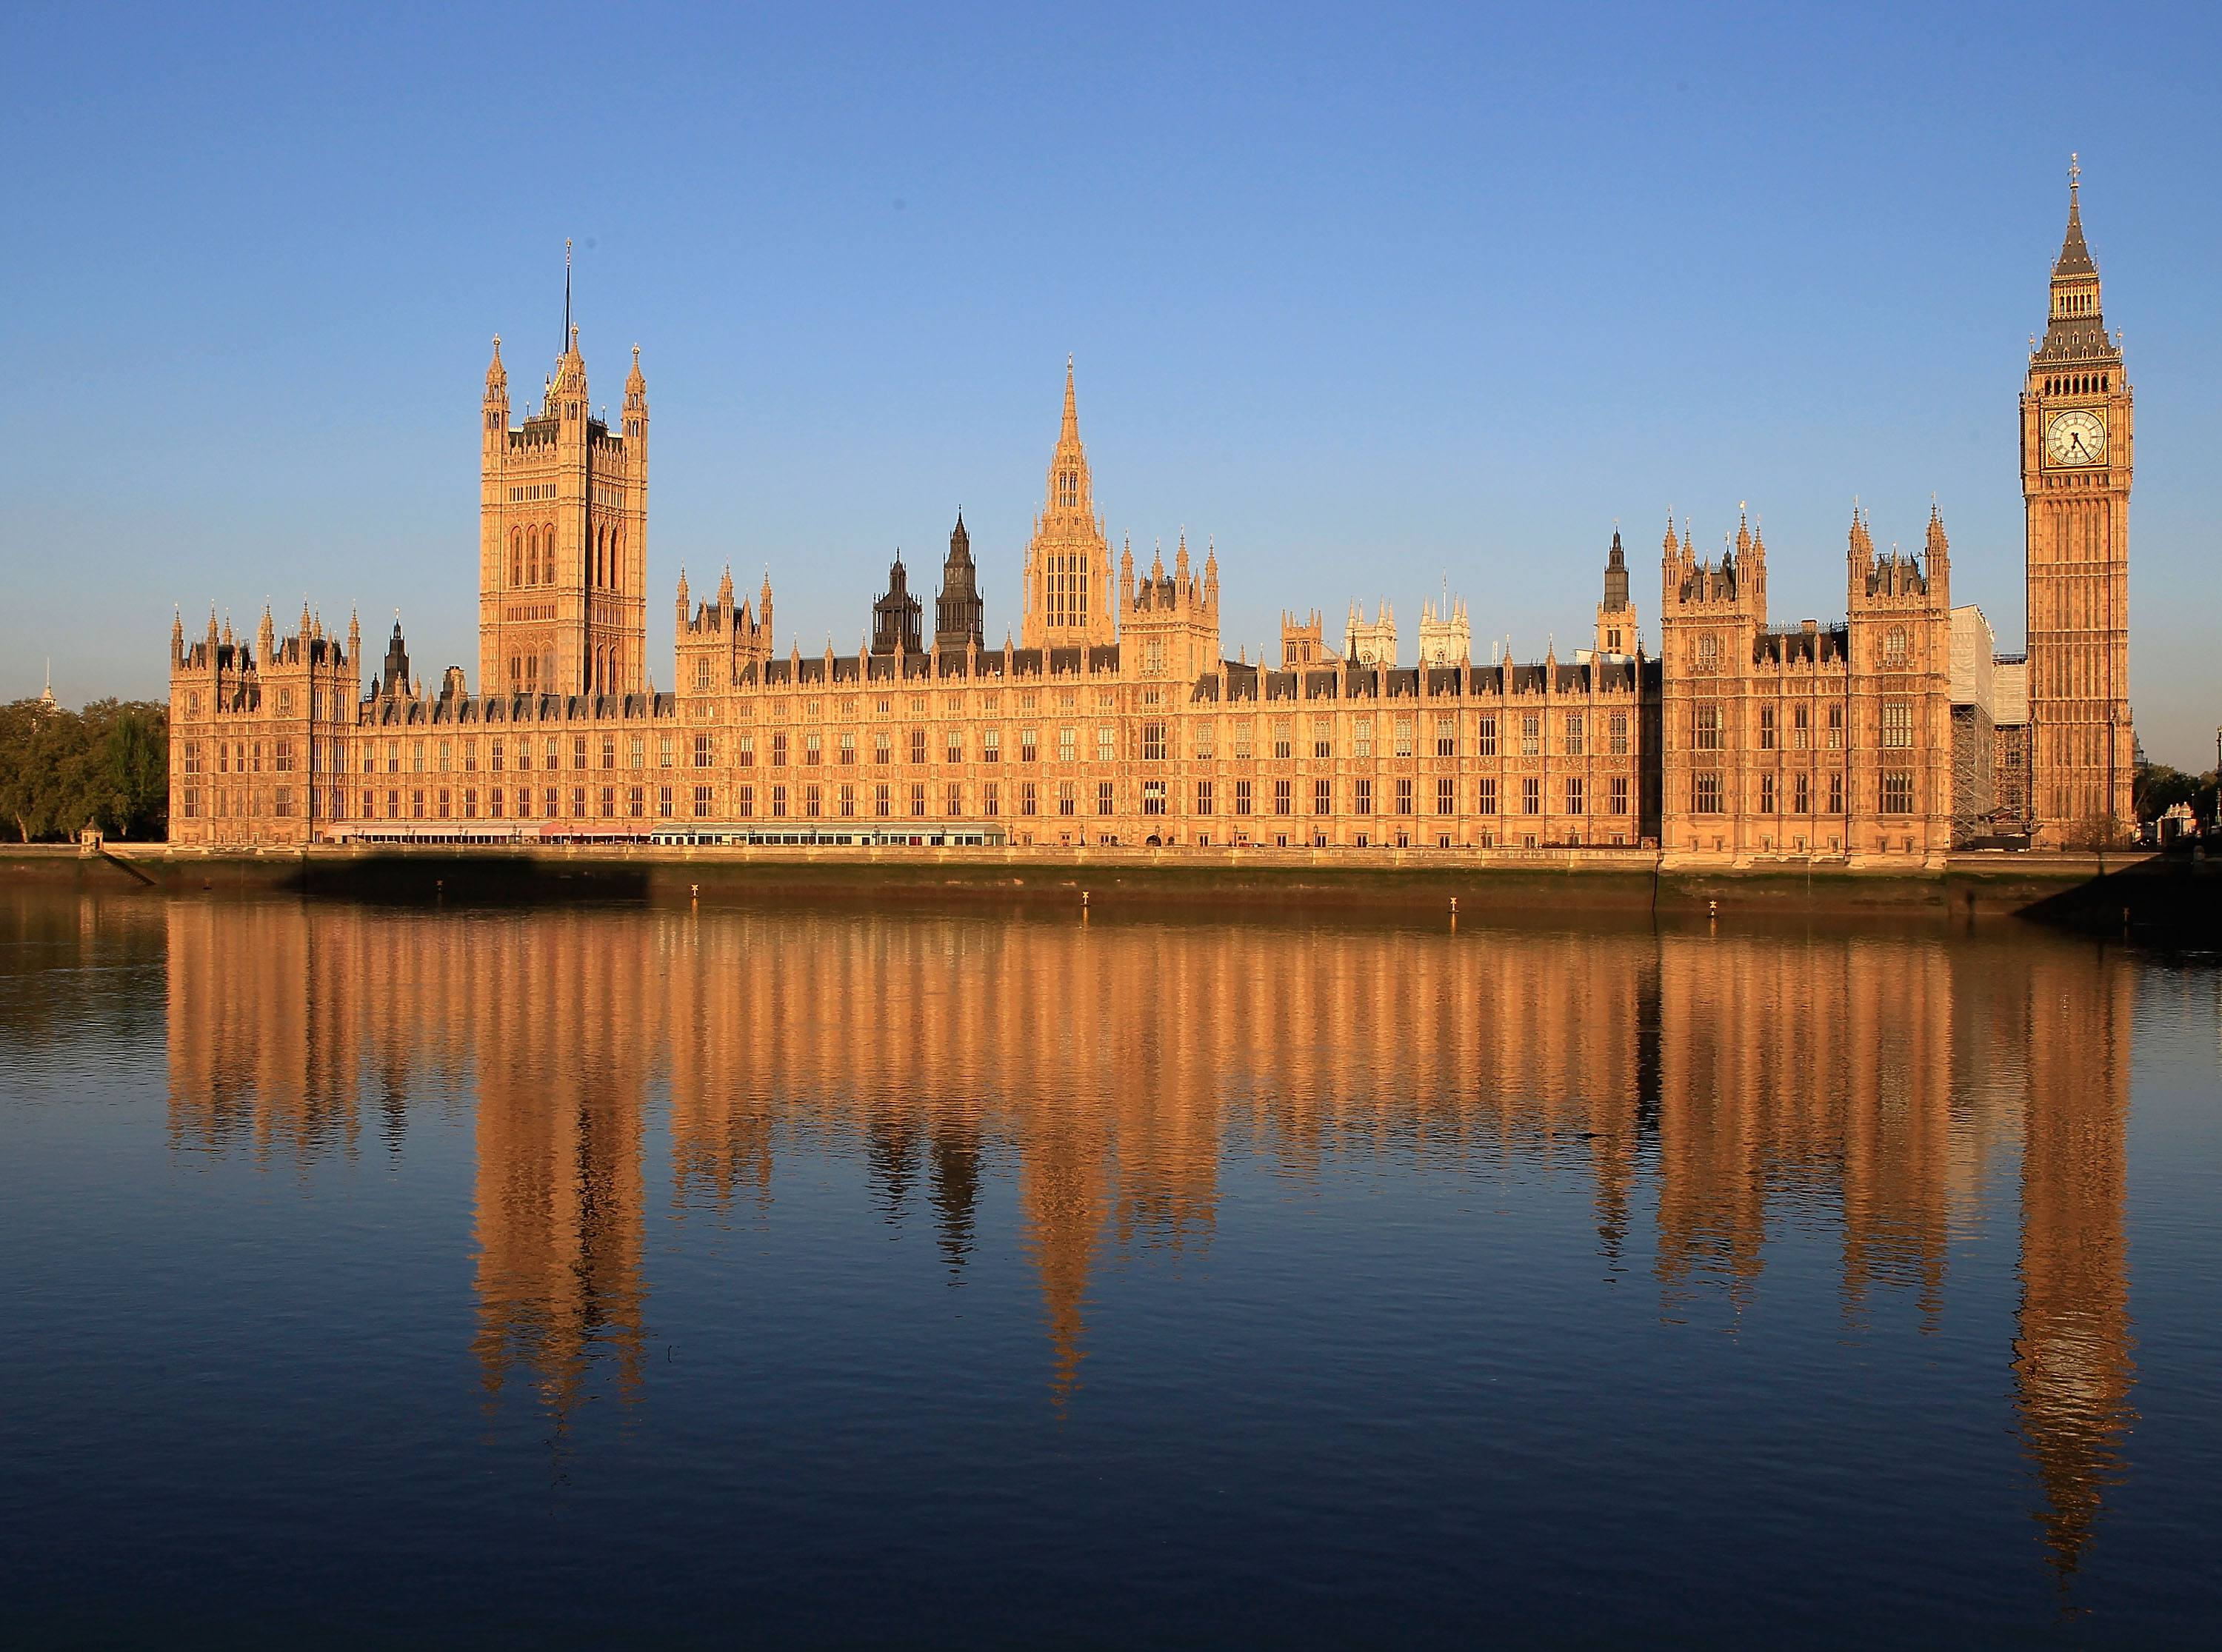 House of Parliment